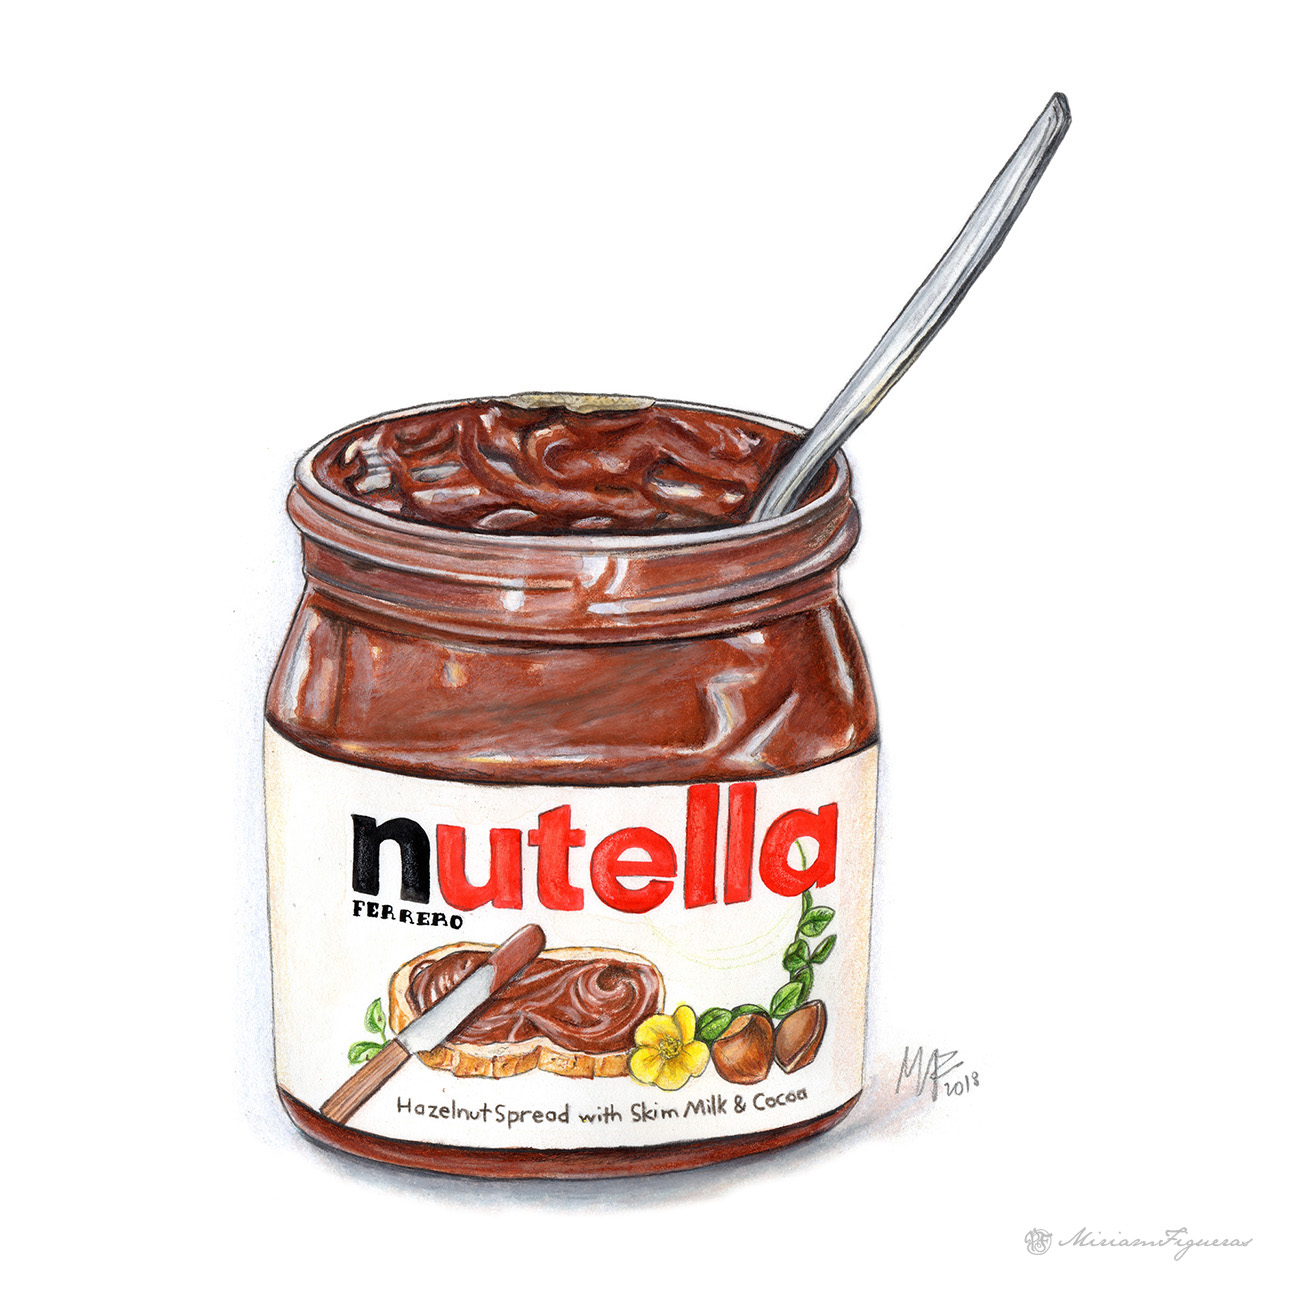 Nutella Jar Illustration